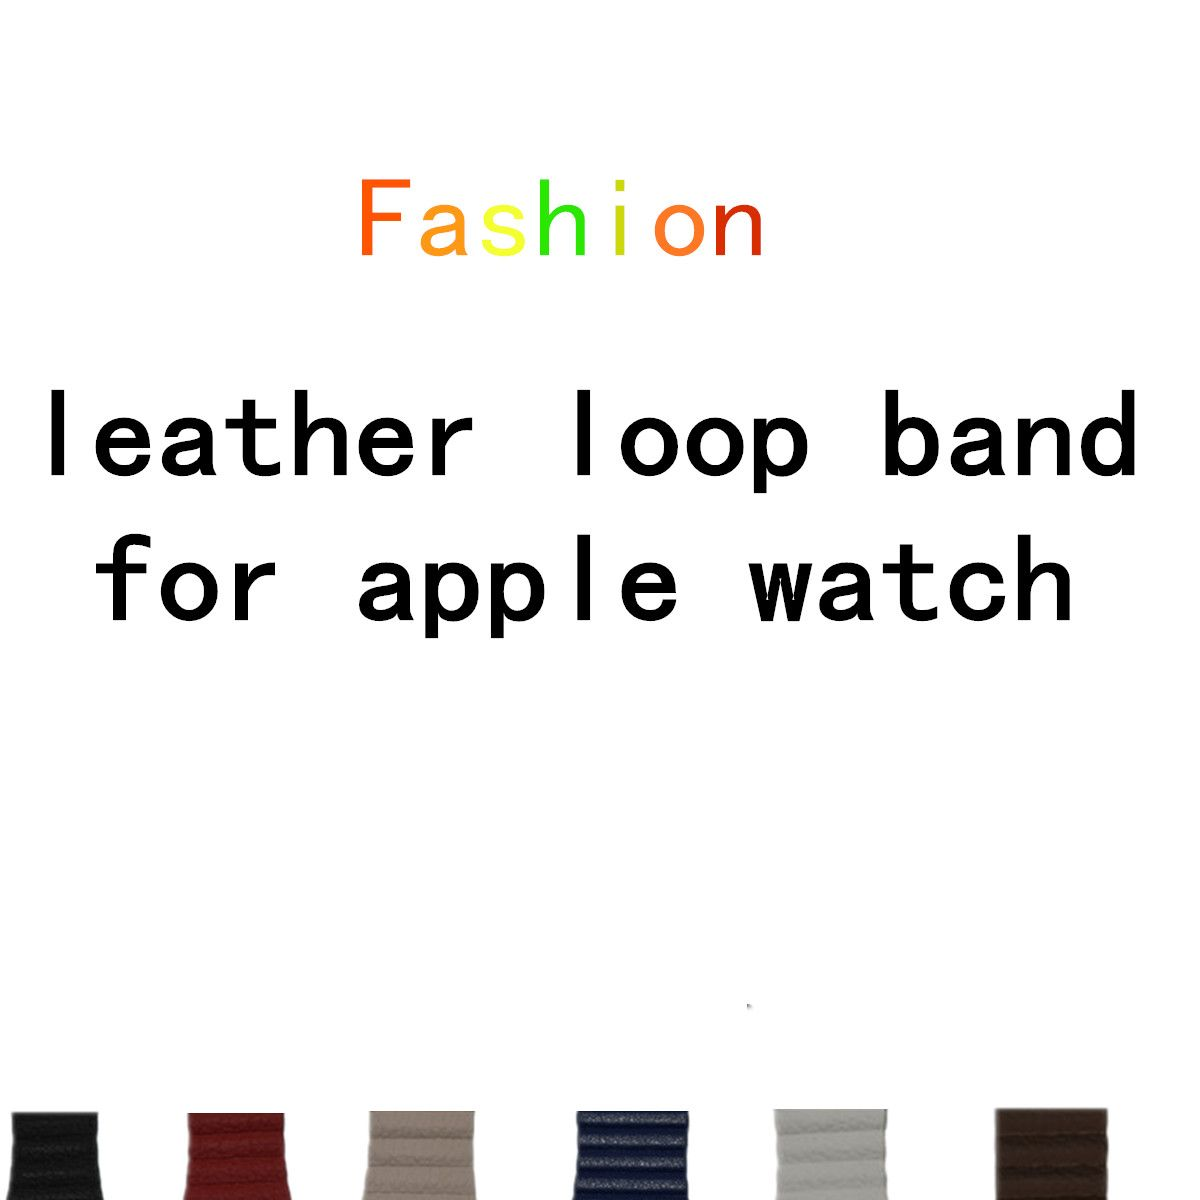 LNOP leather loop <font><b>band</b></font> for apple watch <font><b>band</b></font> 42 mm/38 strap bracelet & Adjustable Magnetic Closure Loop leather strap